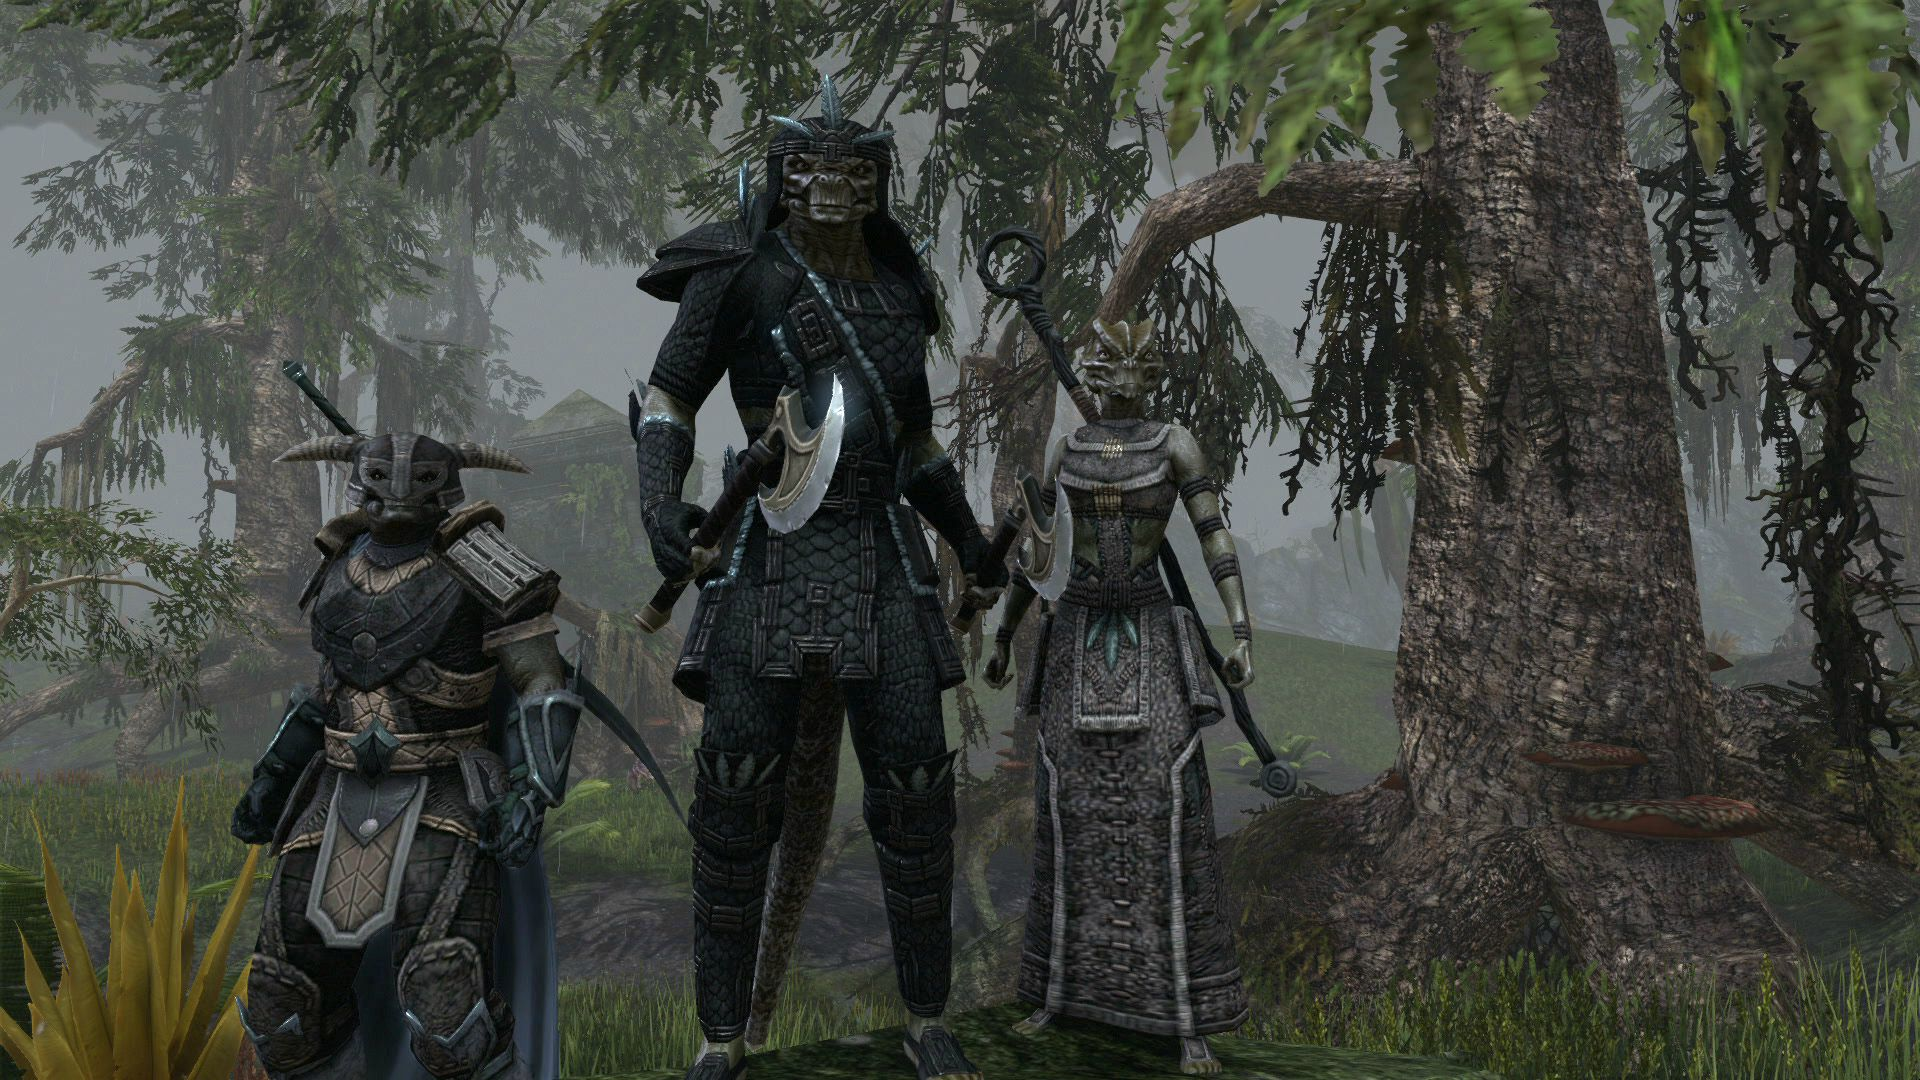 Ya puedes inscribirte a la beta de The Elder Scrolls Online [Adios Vida!!!]